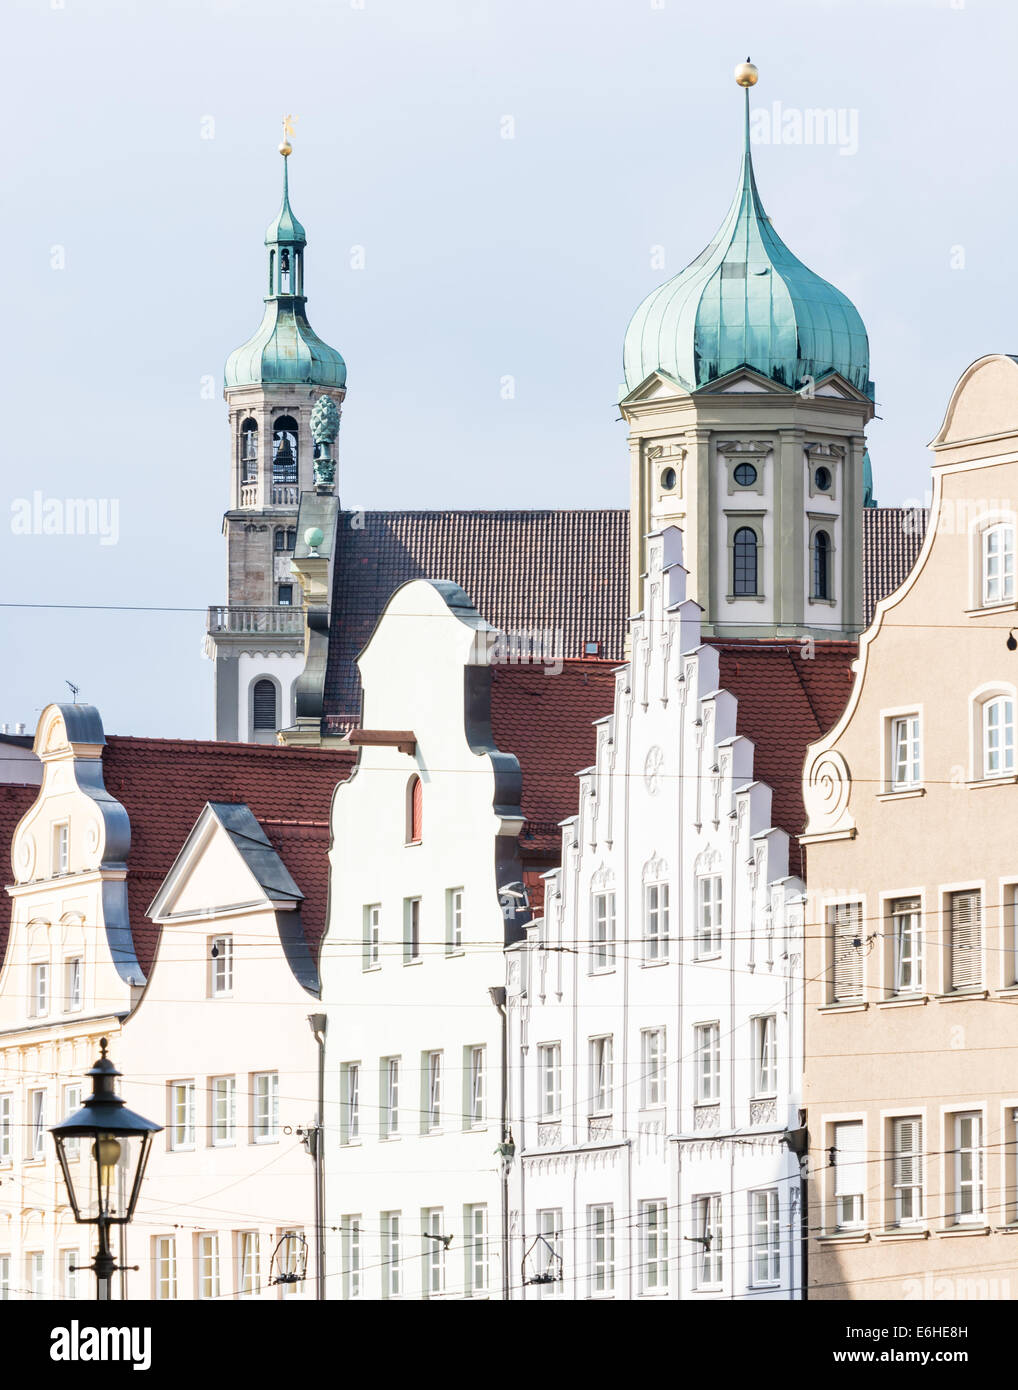 Historic renaissance town hall of Augsburg and the Perlach tower - Stock Image